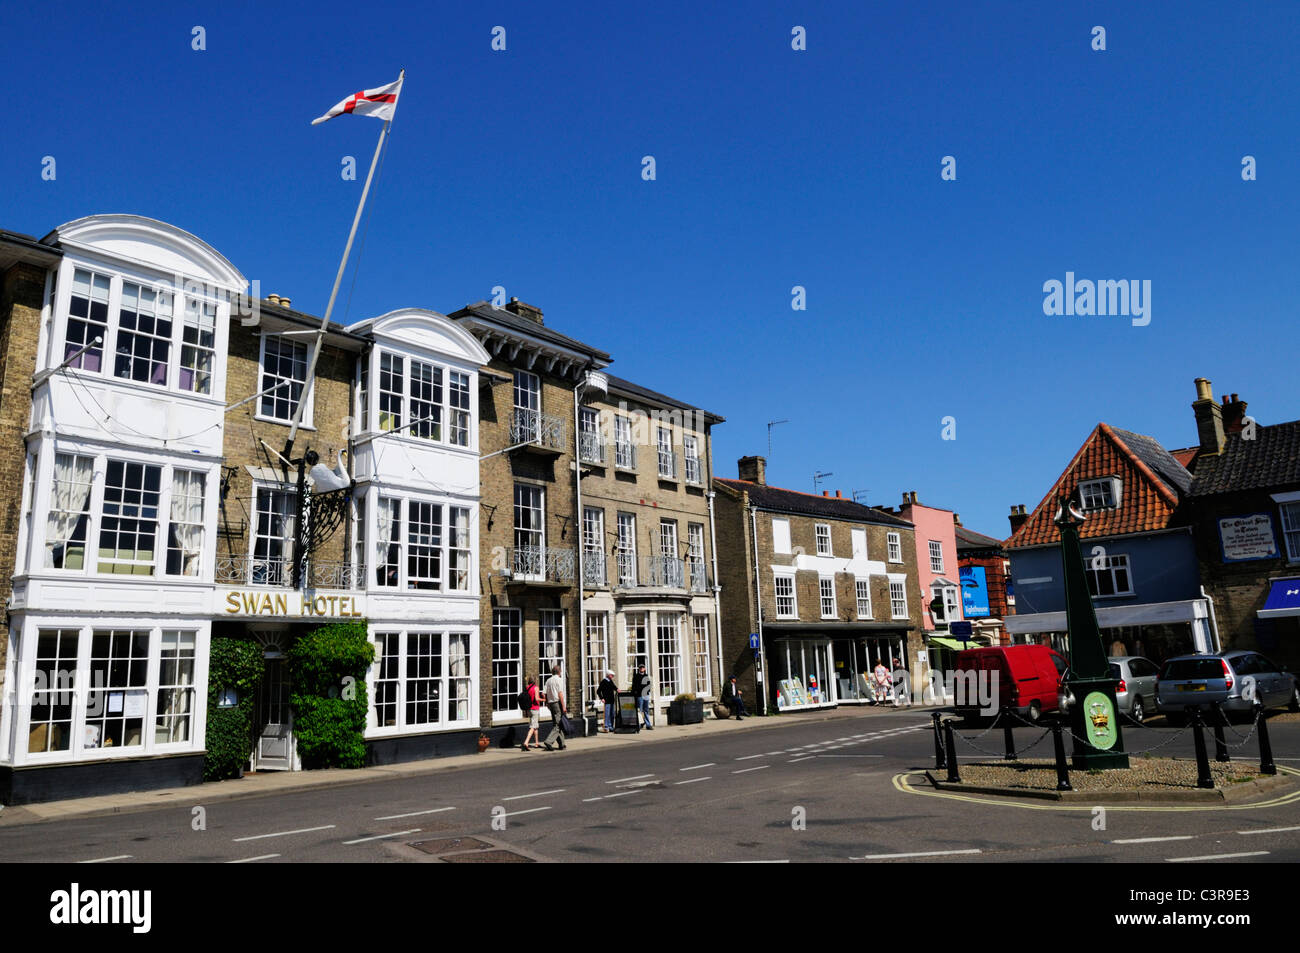 The Swan Hotel and Market Place, Southwold, Suffolk, England, UK - Stock Image